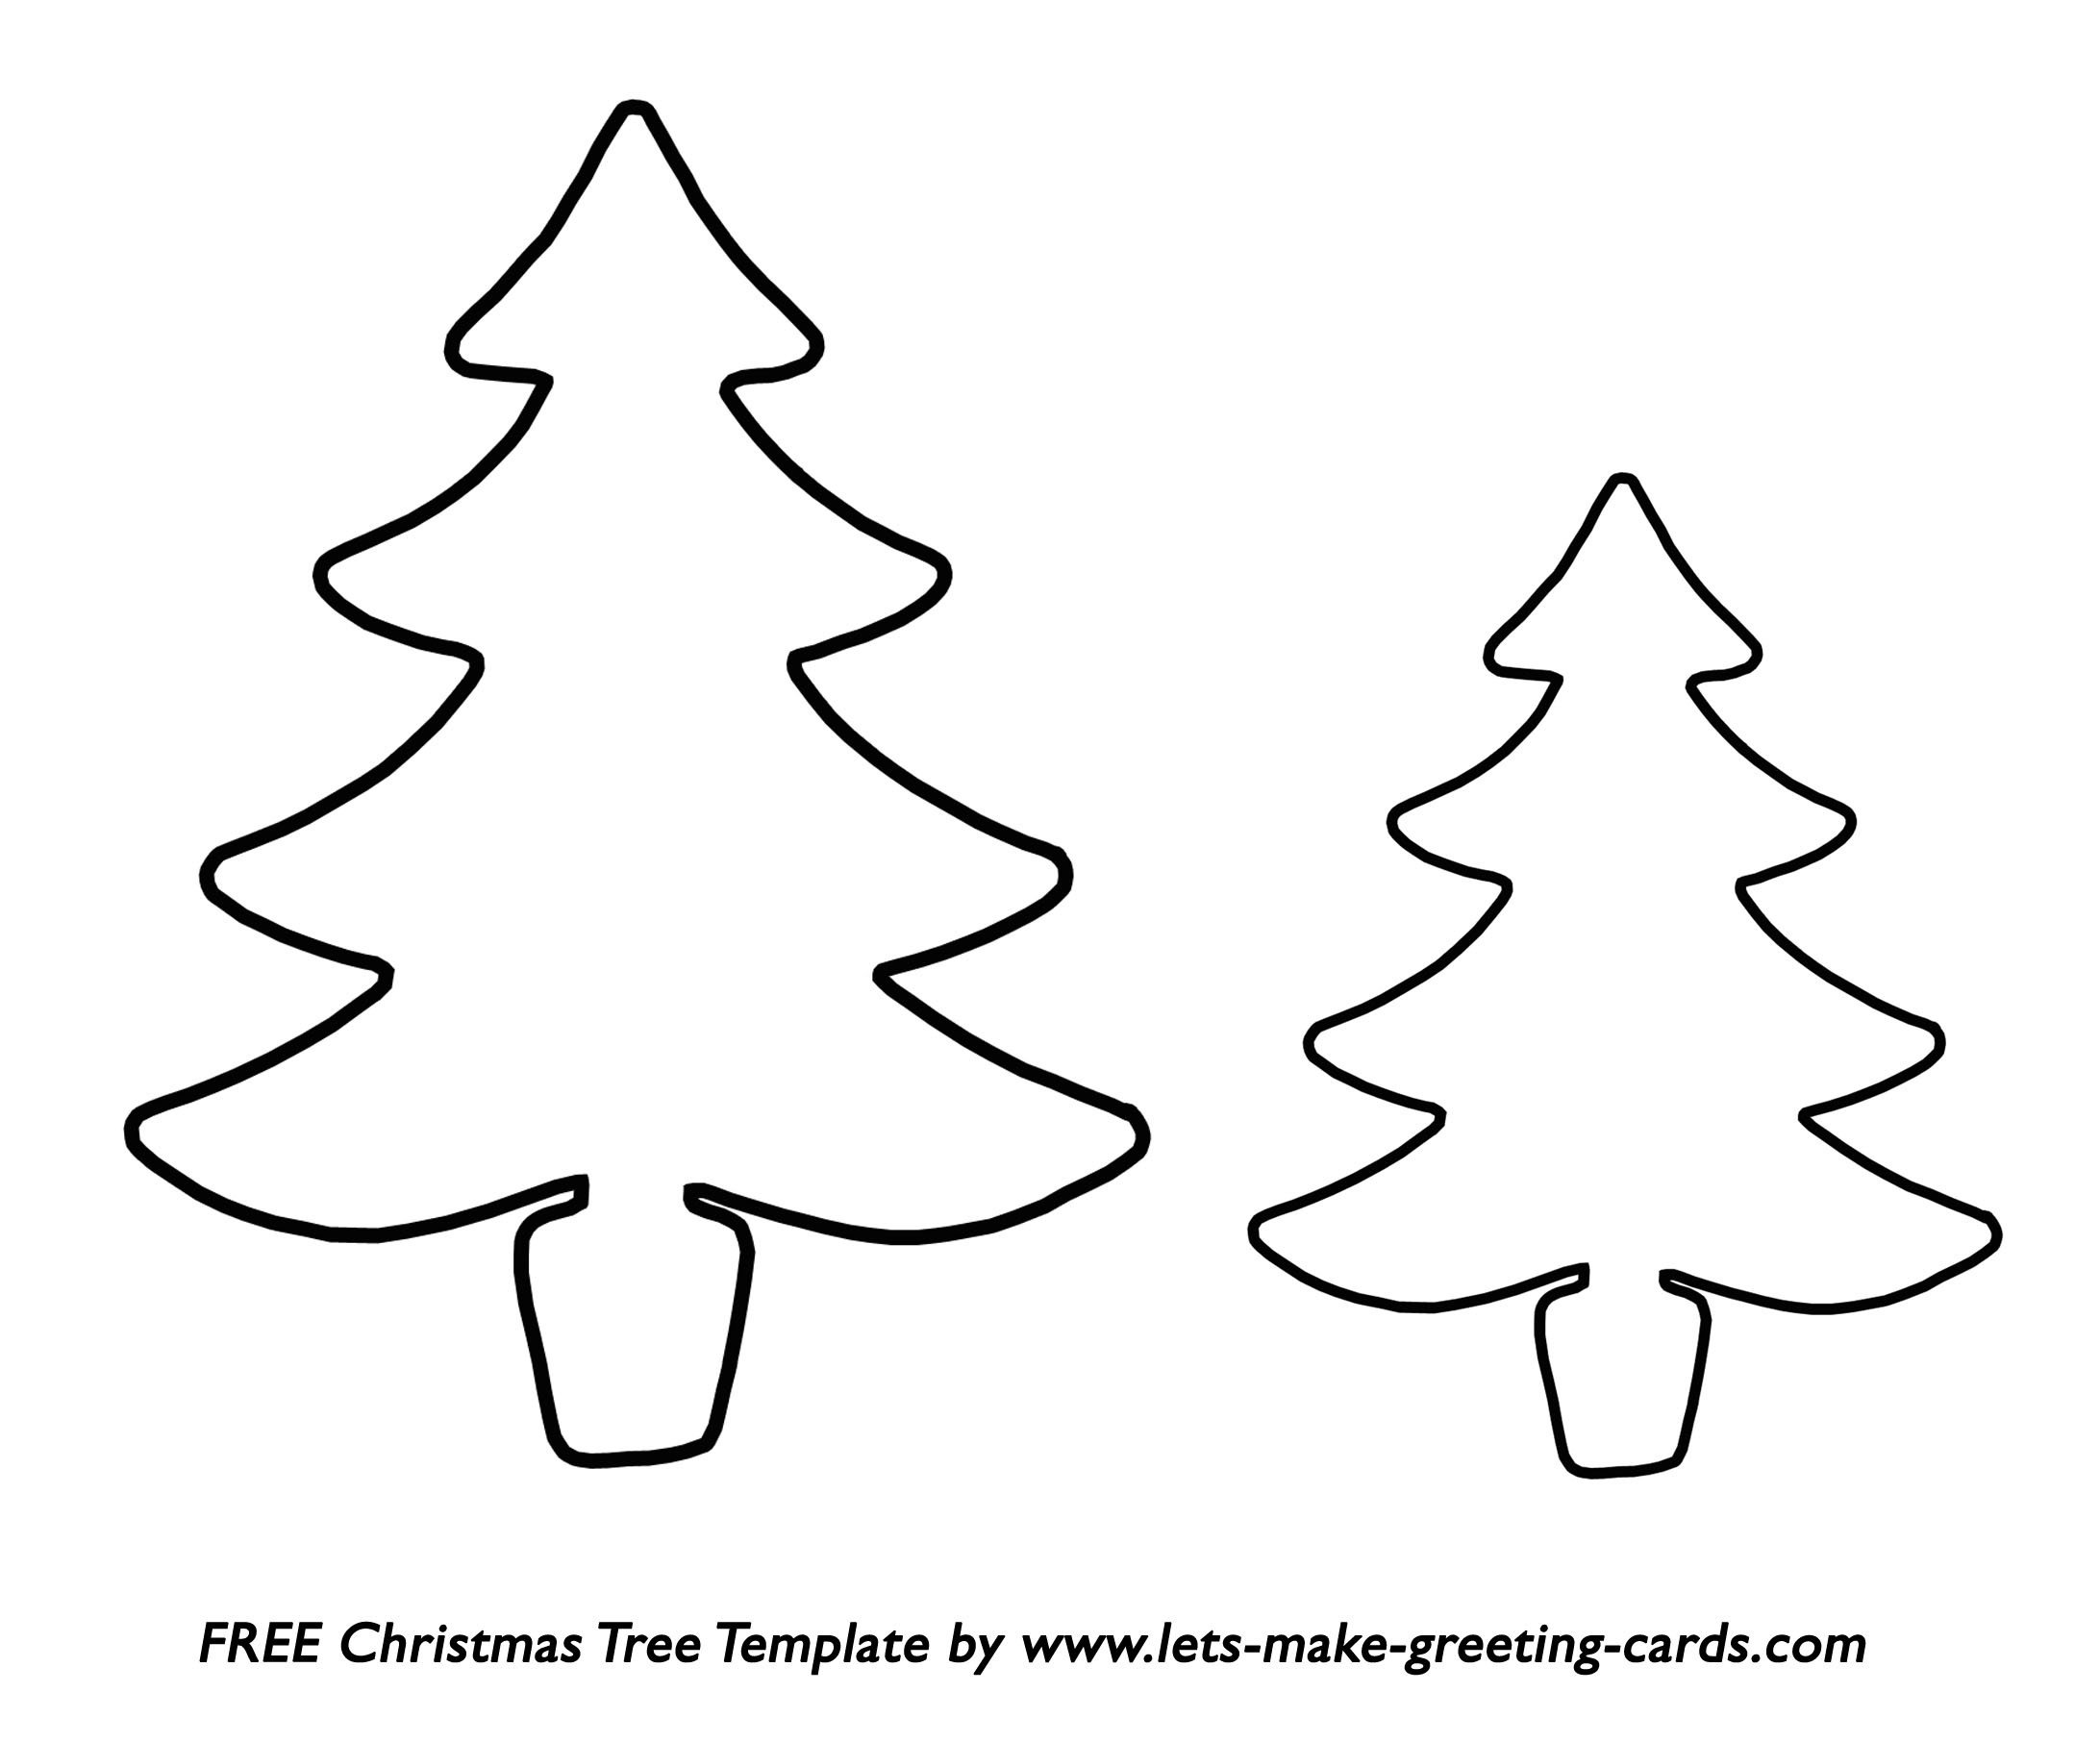 Christmas Tree Template Printable Decadent Chocolate Mousse